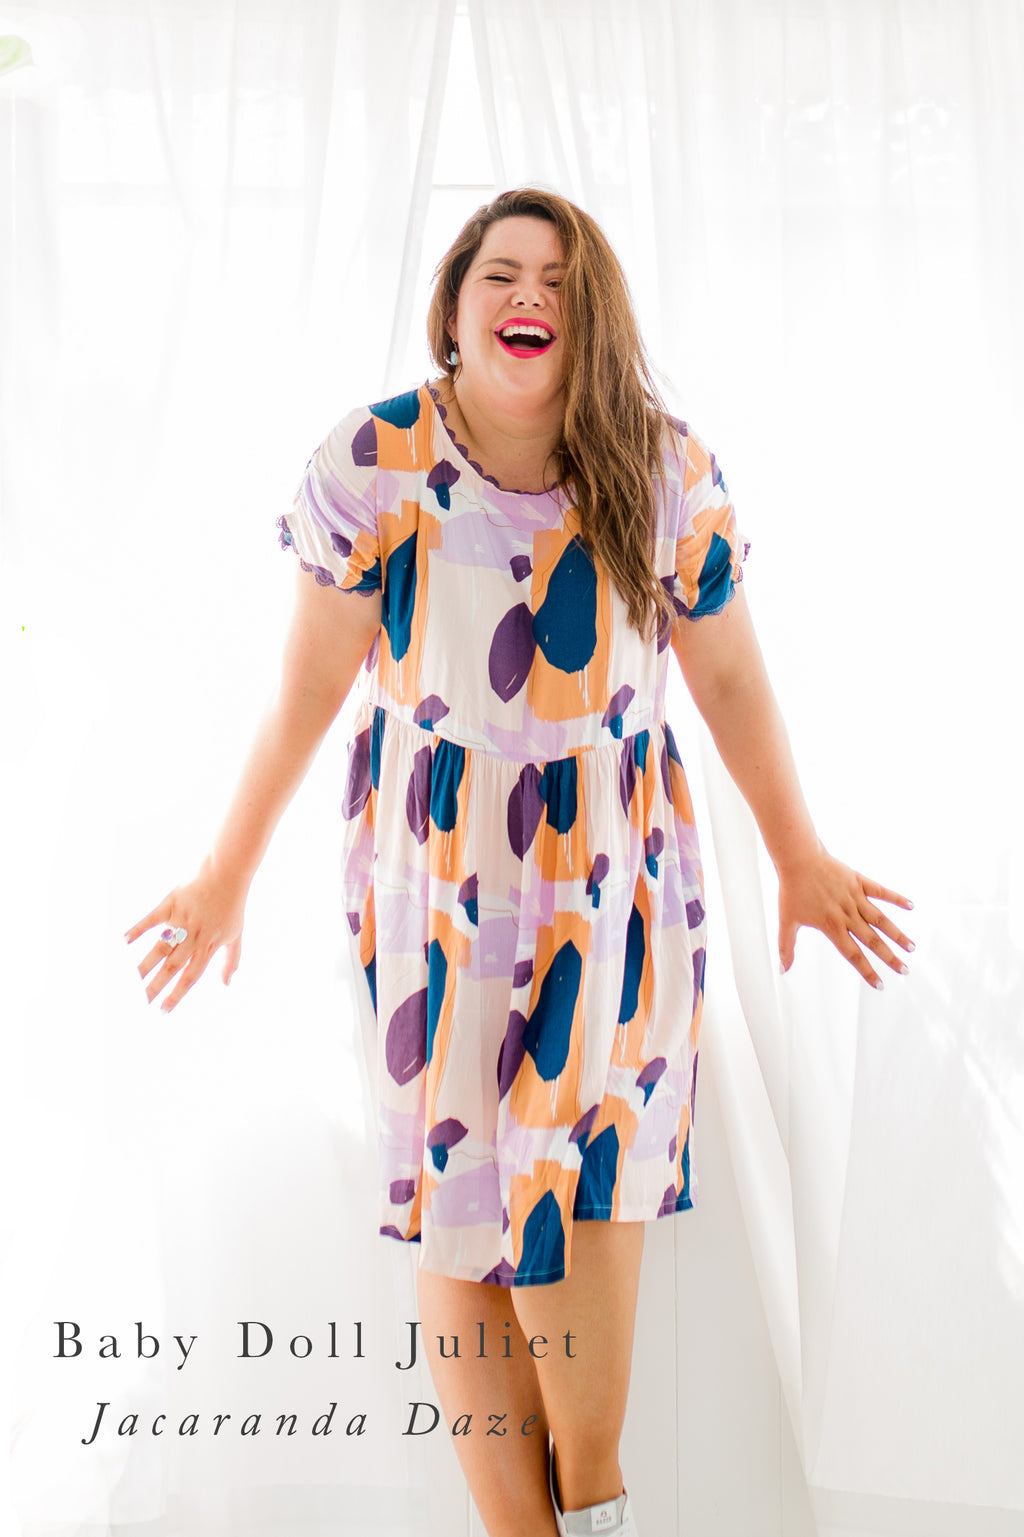 Baby Doll Juliet, a drop waist knee length dress with a cap sleeve in a colourful print of purple, blush and teal paint. Curvy model laughing in front of window.